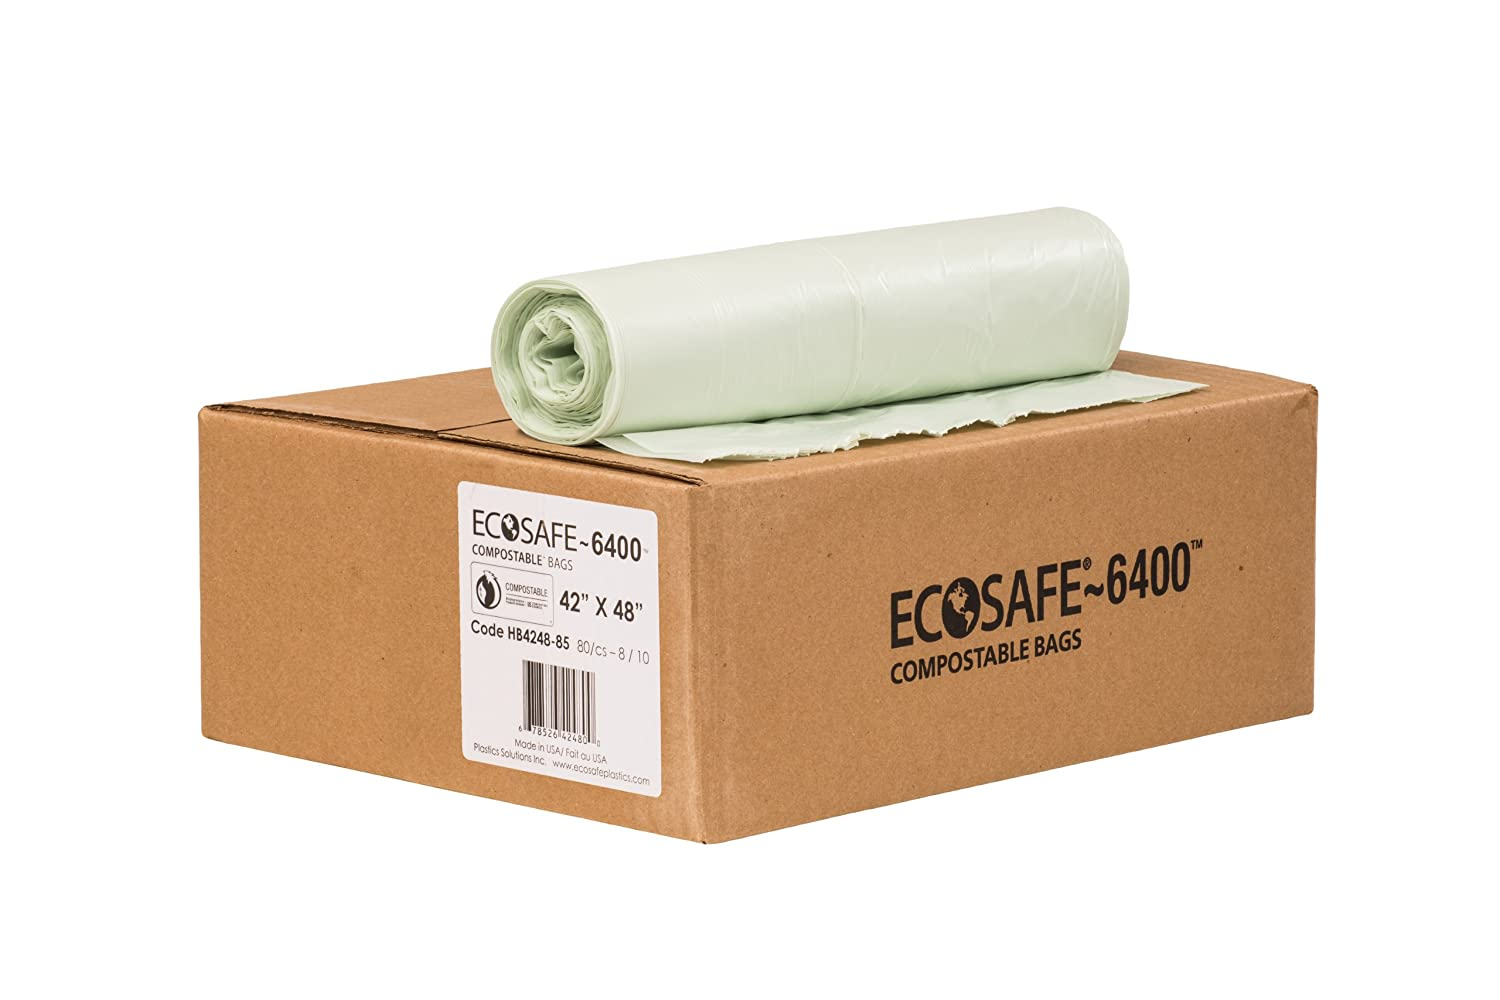 EcoSafe-6400 HB4248-85 Compostable Bag 55-Gallon Pack of 80 Green Certified Compostable